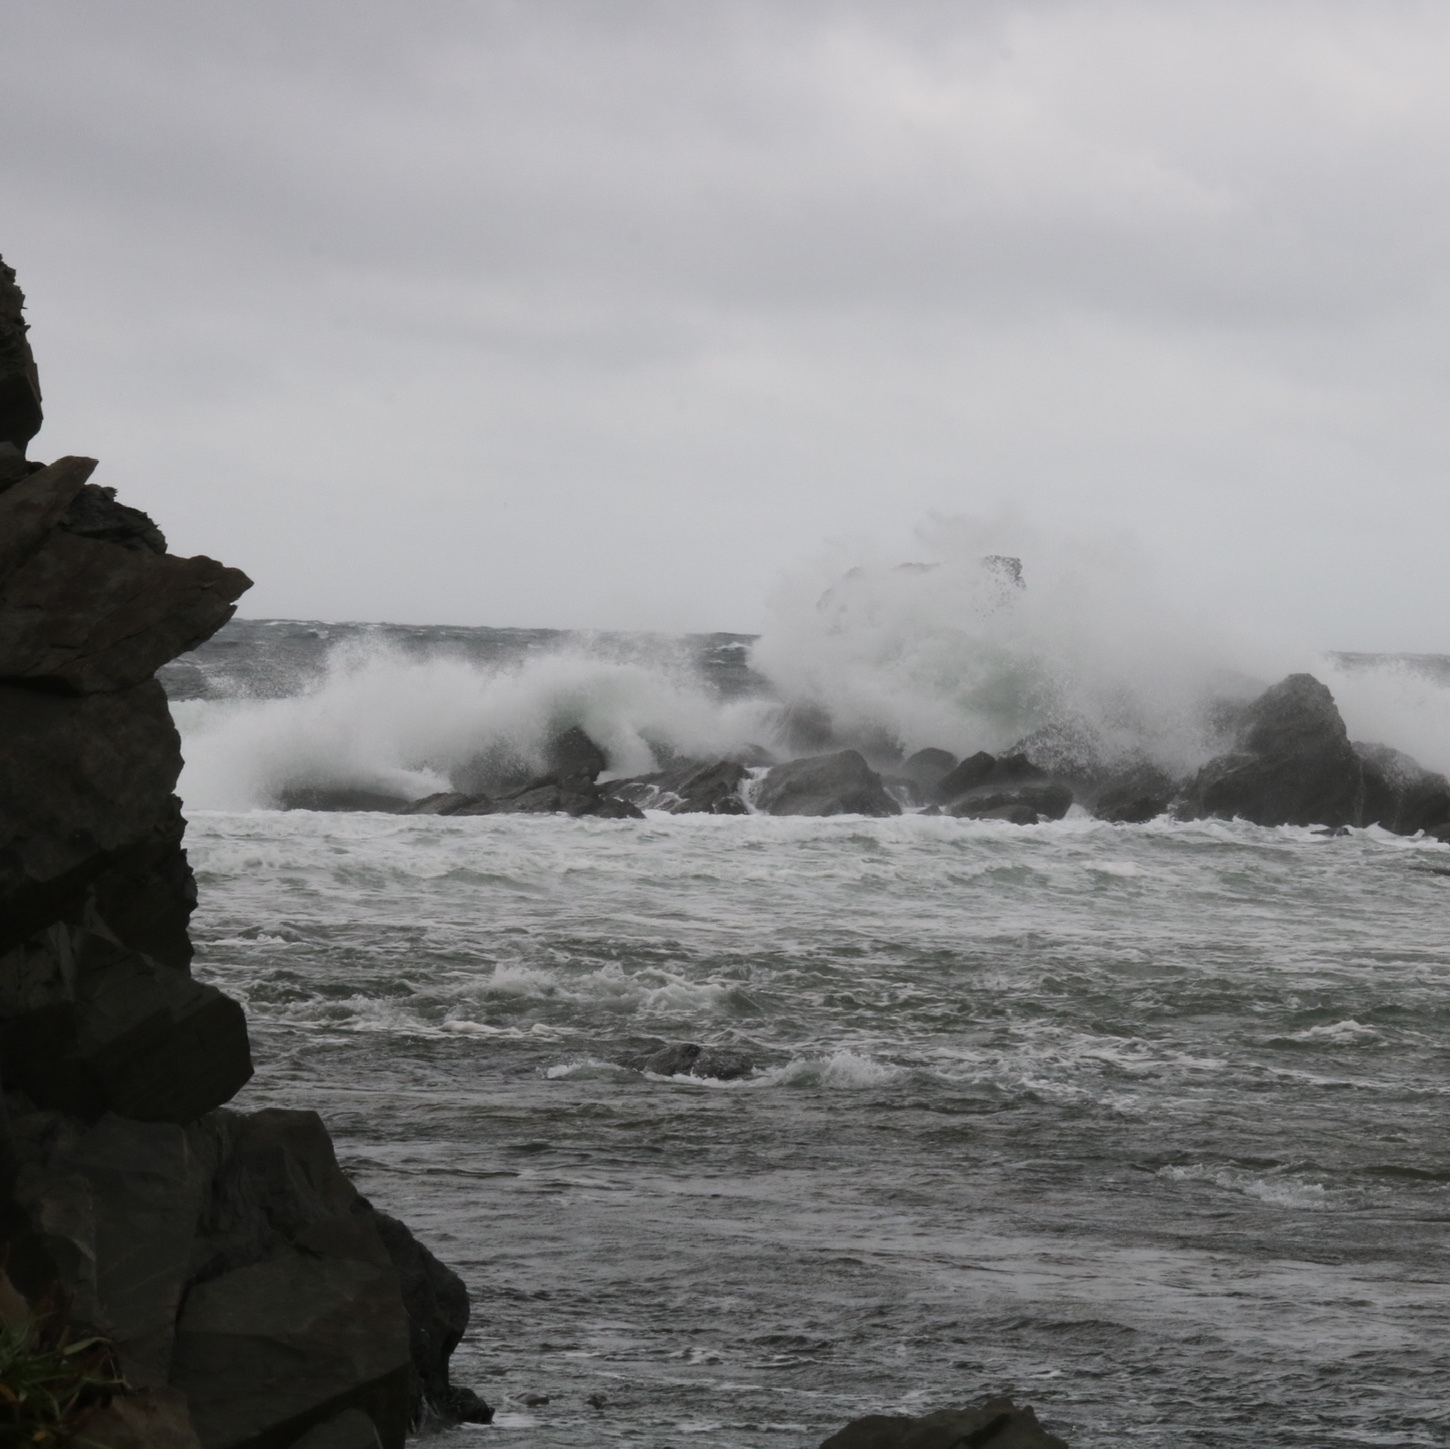 waves crashing over rocks. there is a rock wall on the left side